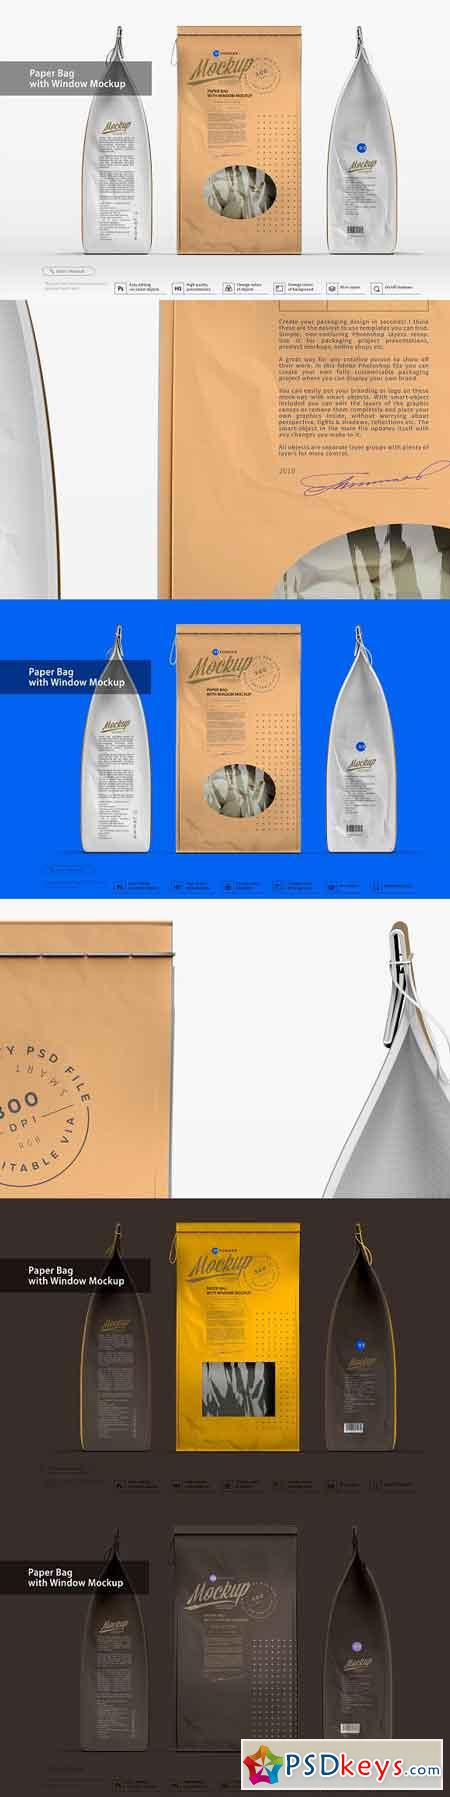 Paper Bag with Window Mockup 3218550